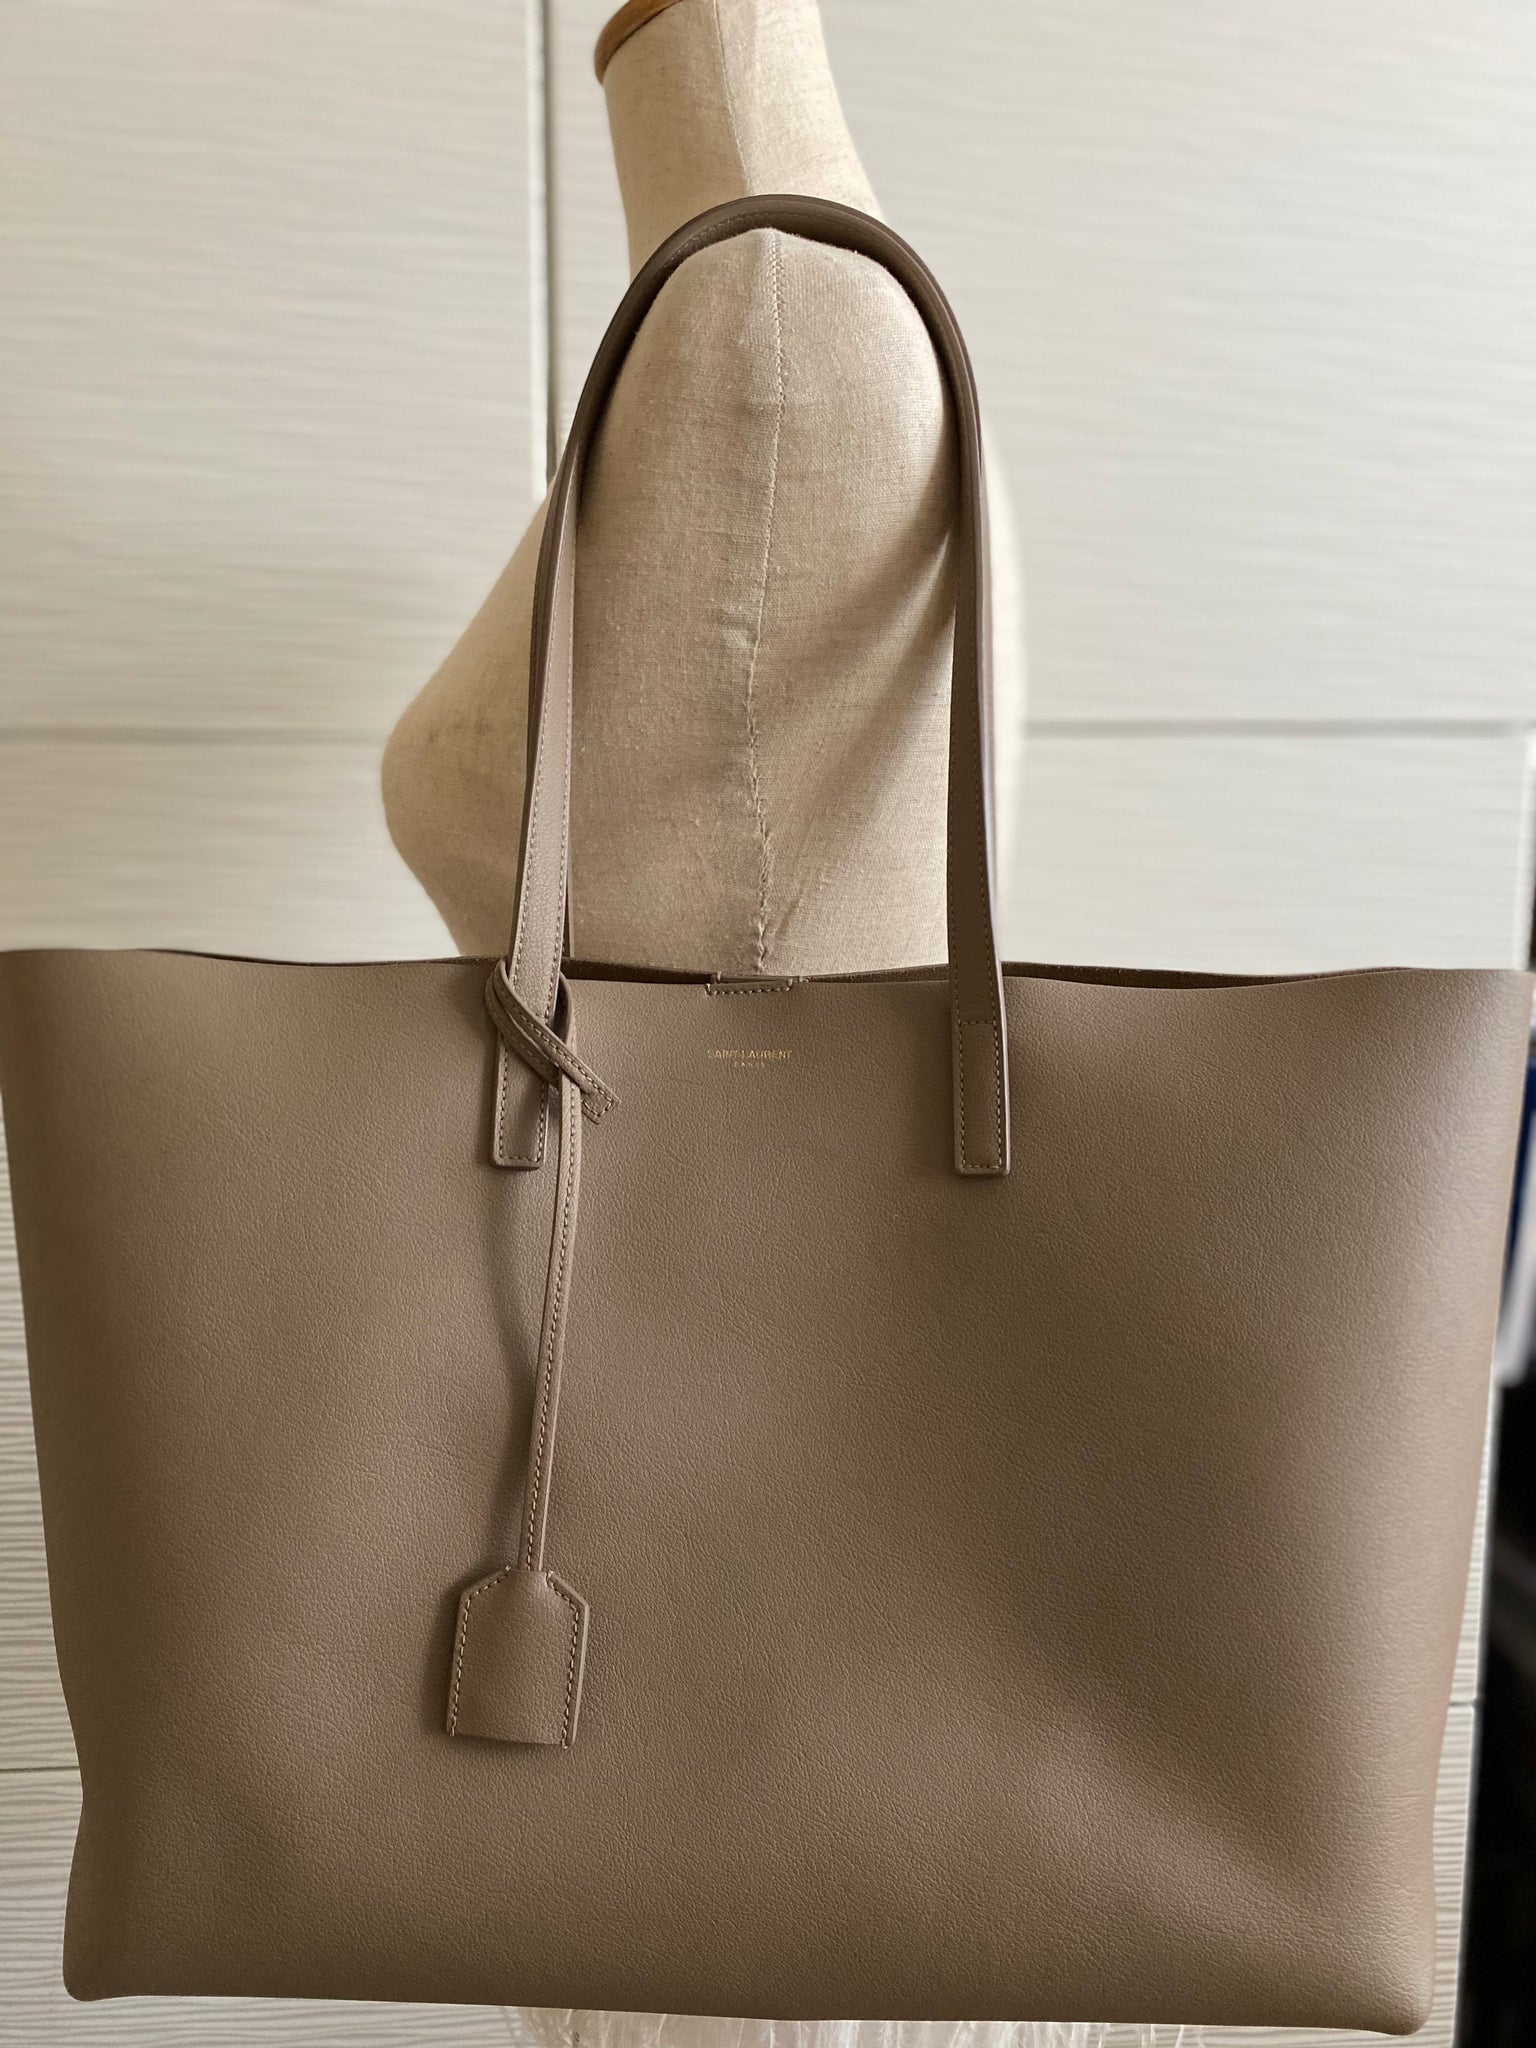 SAINT LAURENT CALFSKIN SHOPPING TOTE BAG, TAUPE